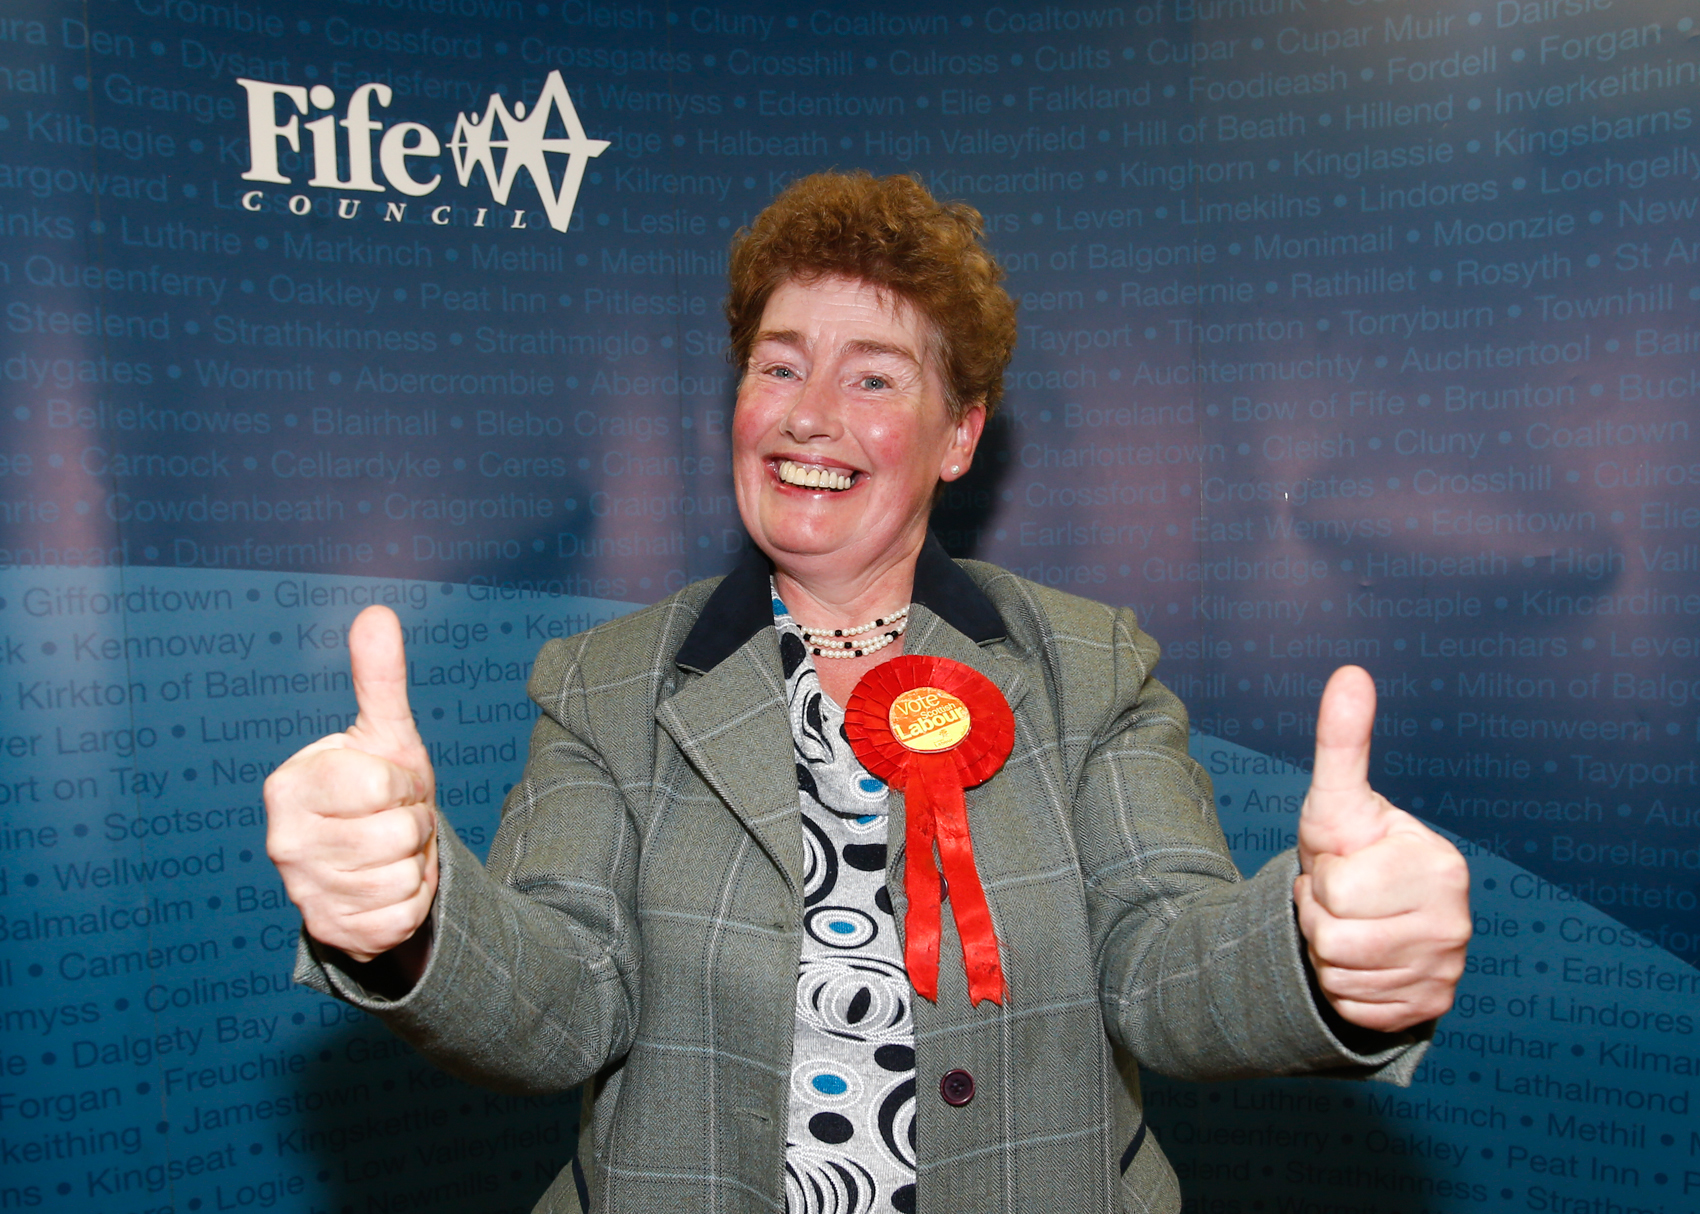 Mary Lockhart celebrates her council election win